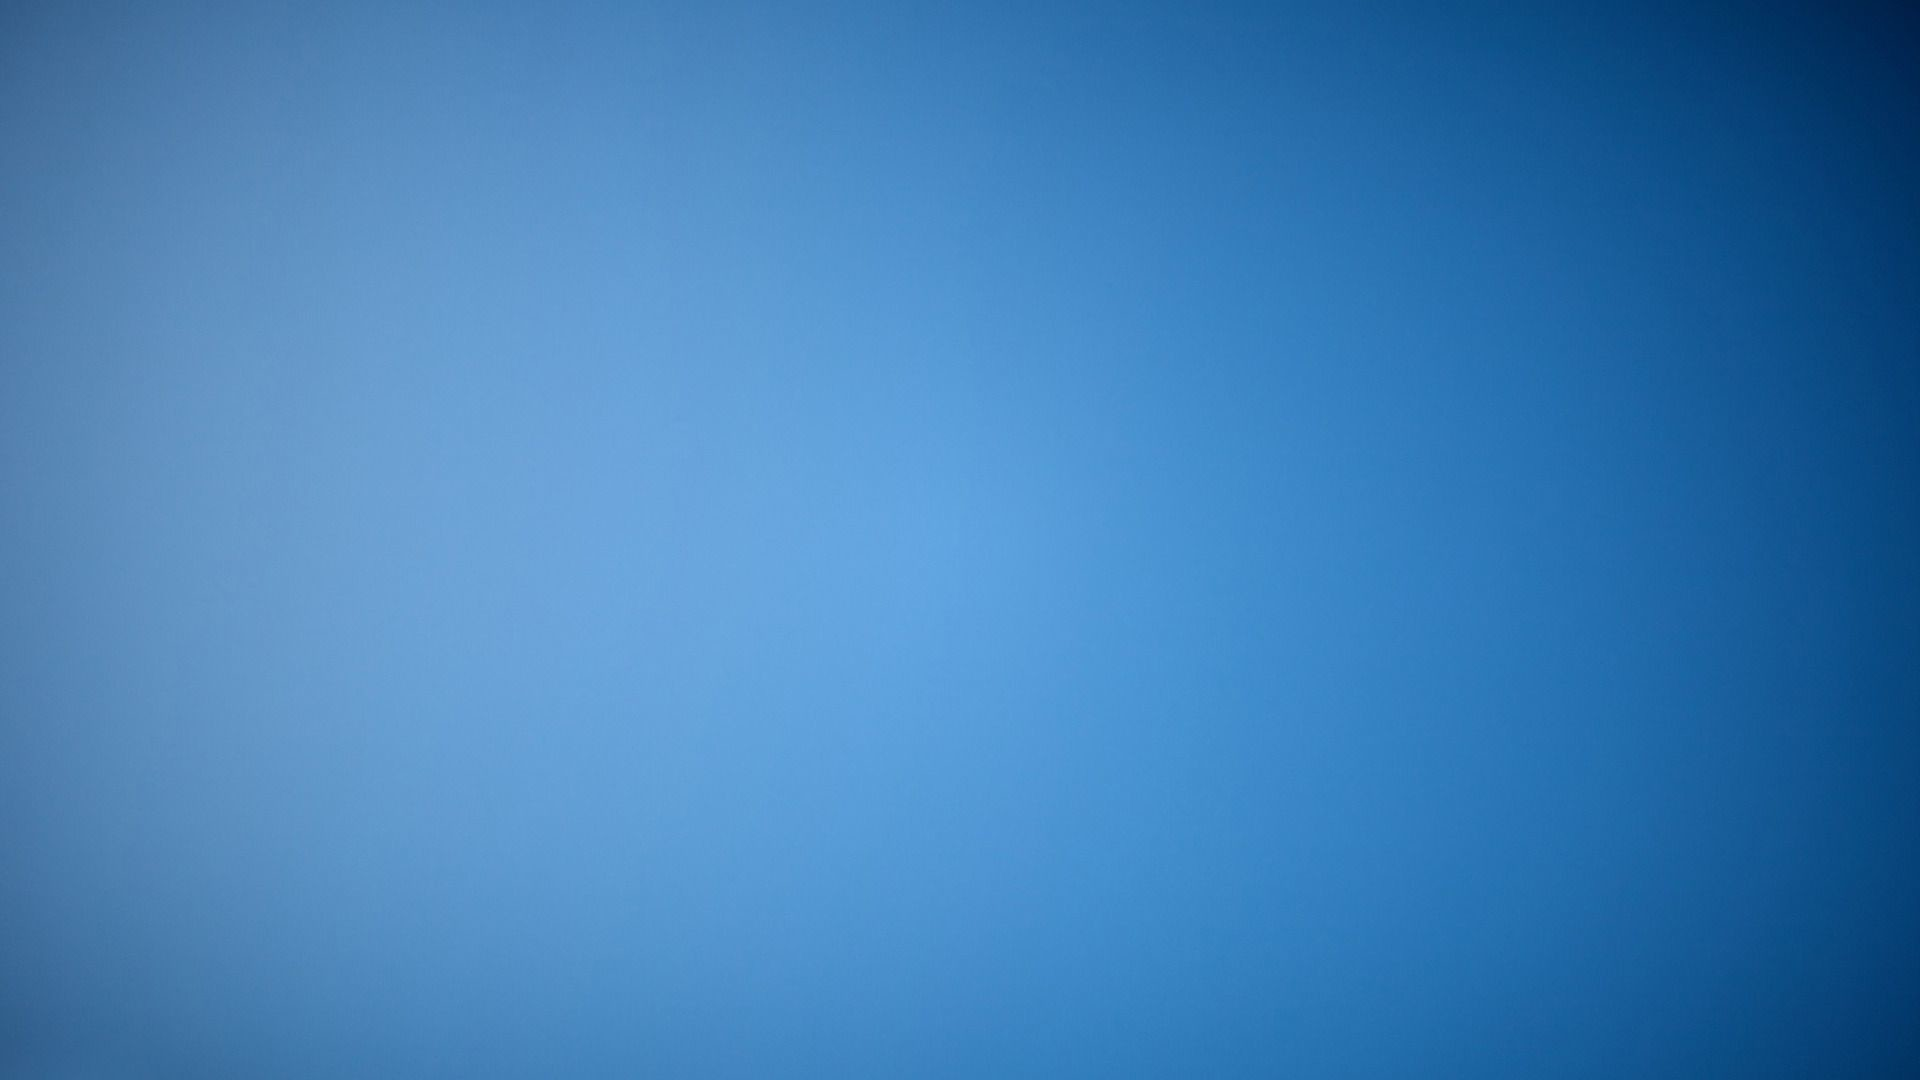 1920x1080 Blue Gradient Wallpaper - Wallpaper HD Base